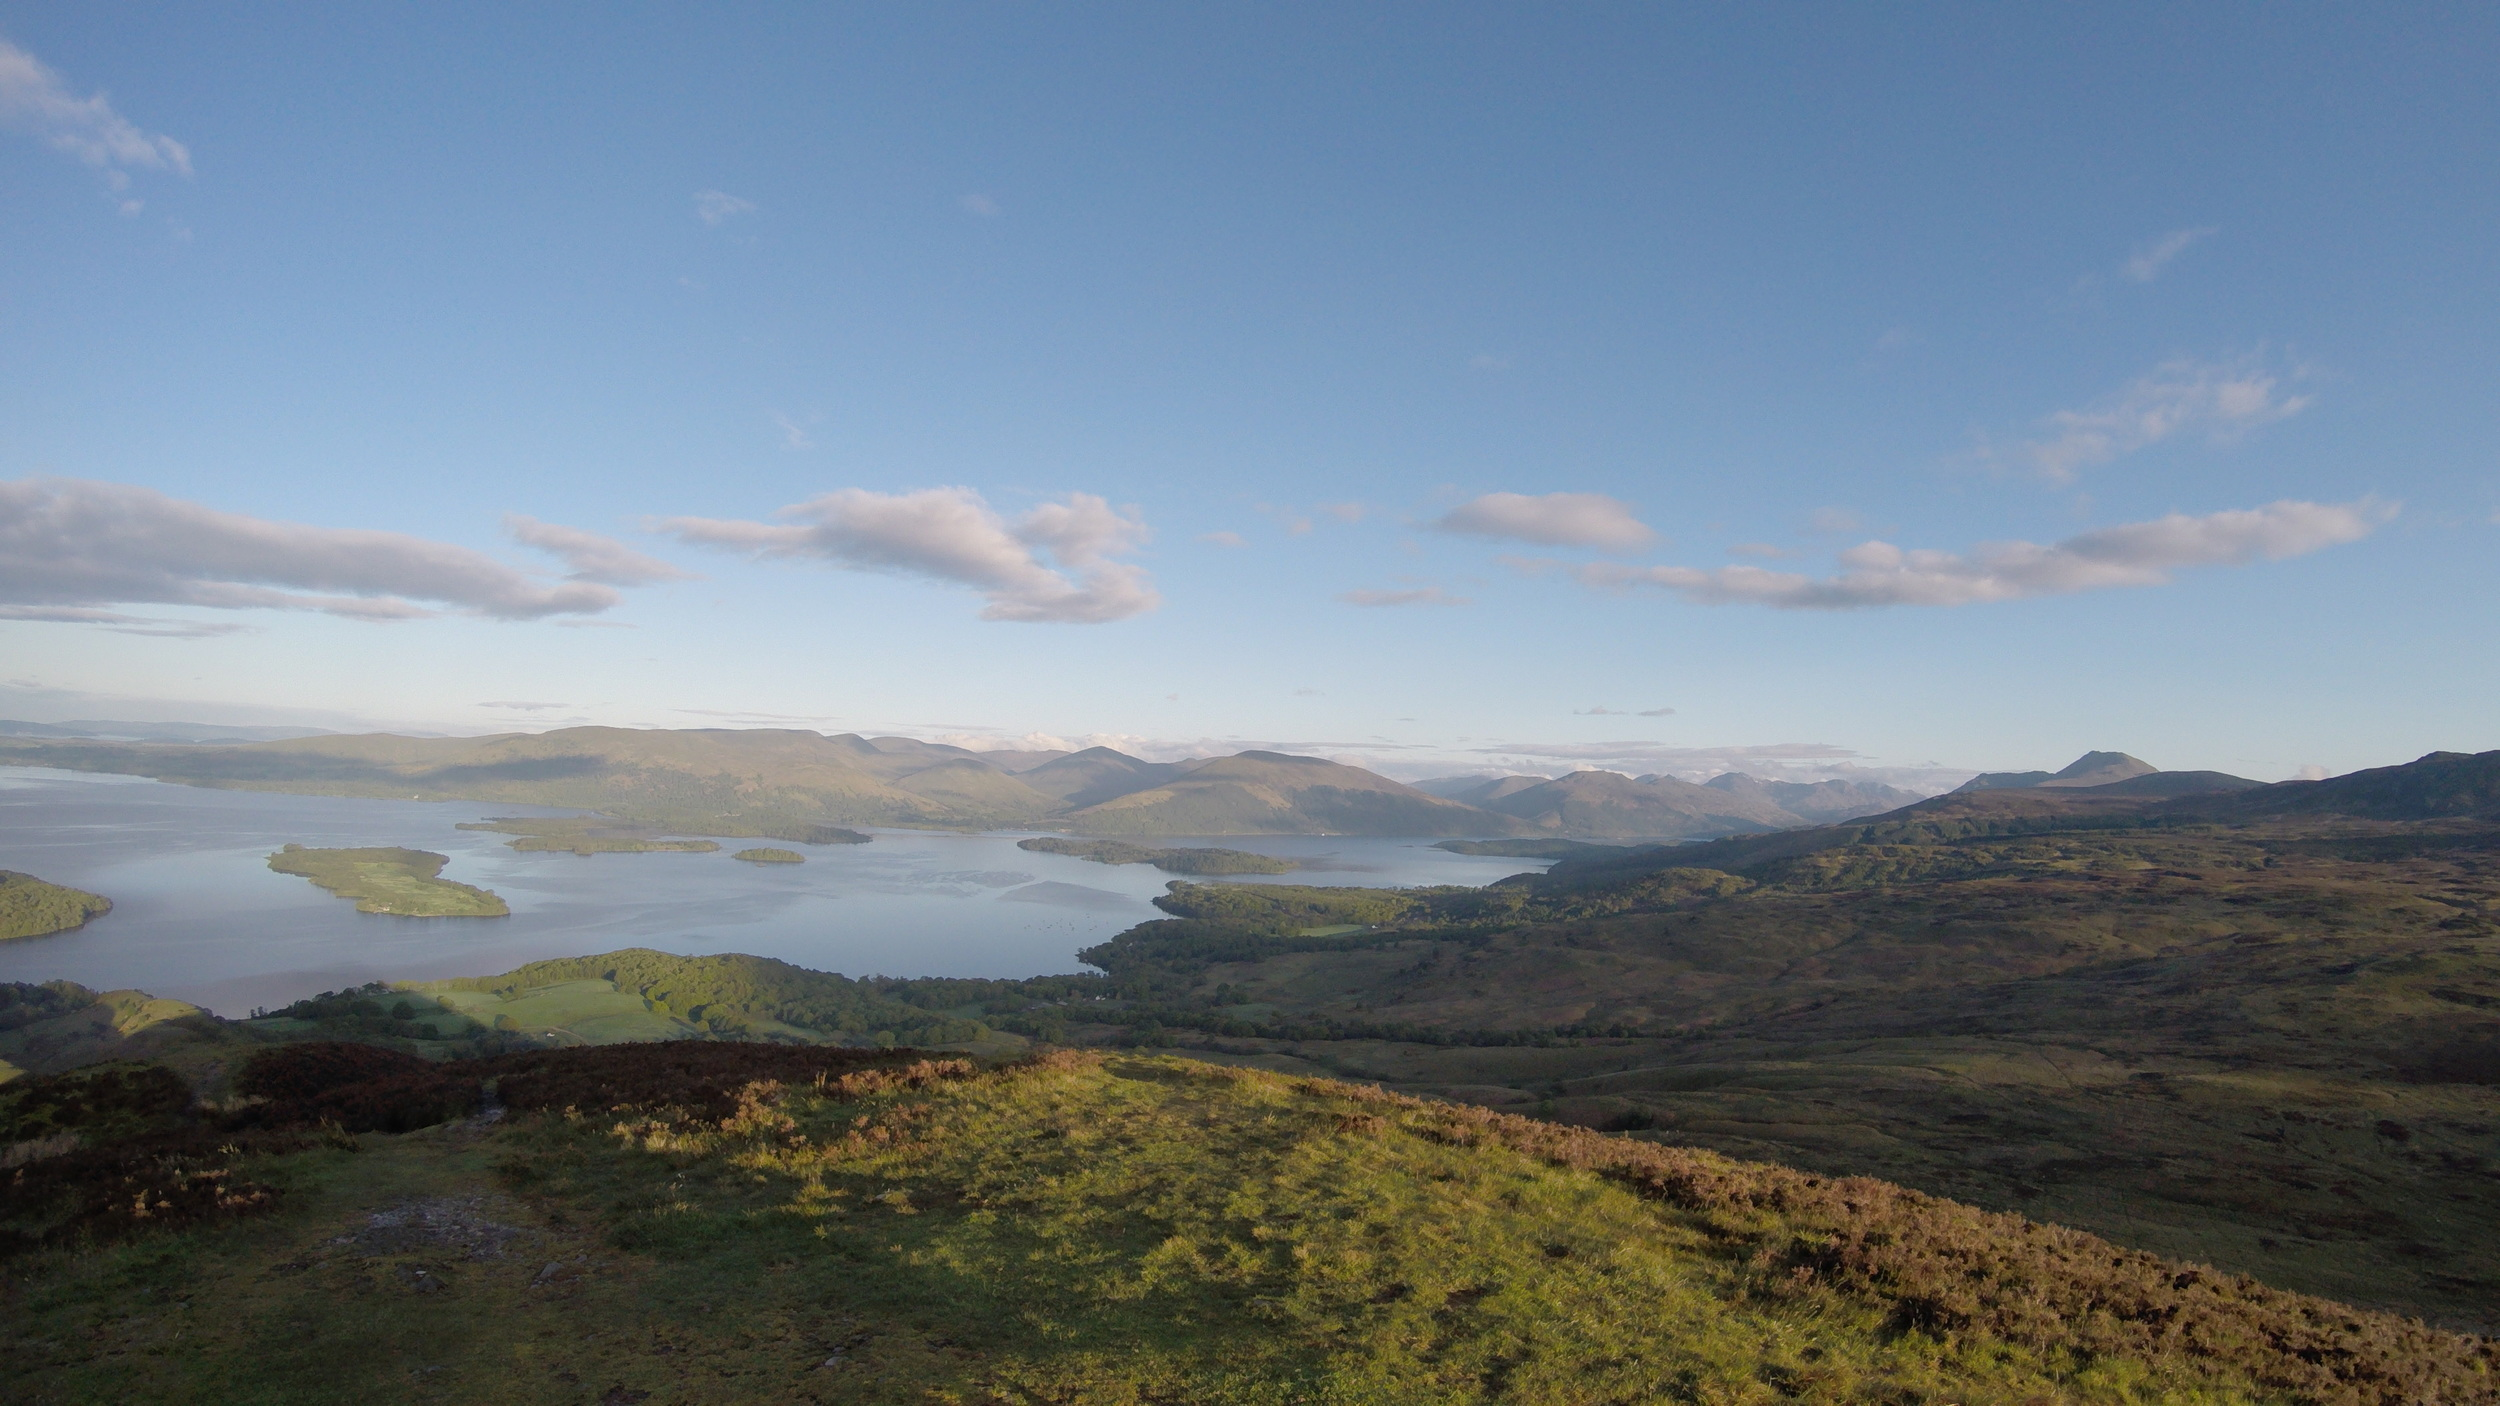 The Scottish Highlands from the top of Conic Hill